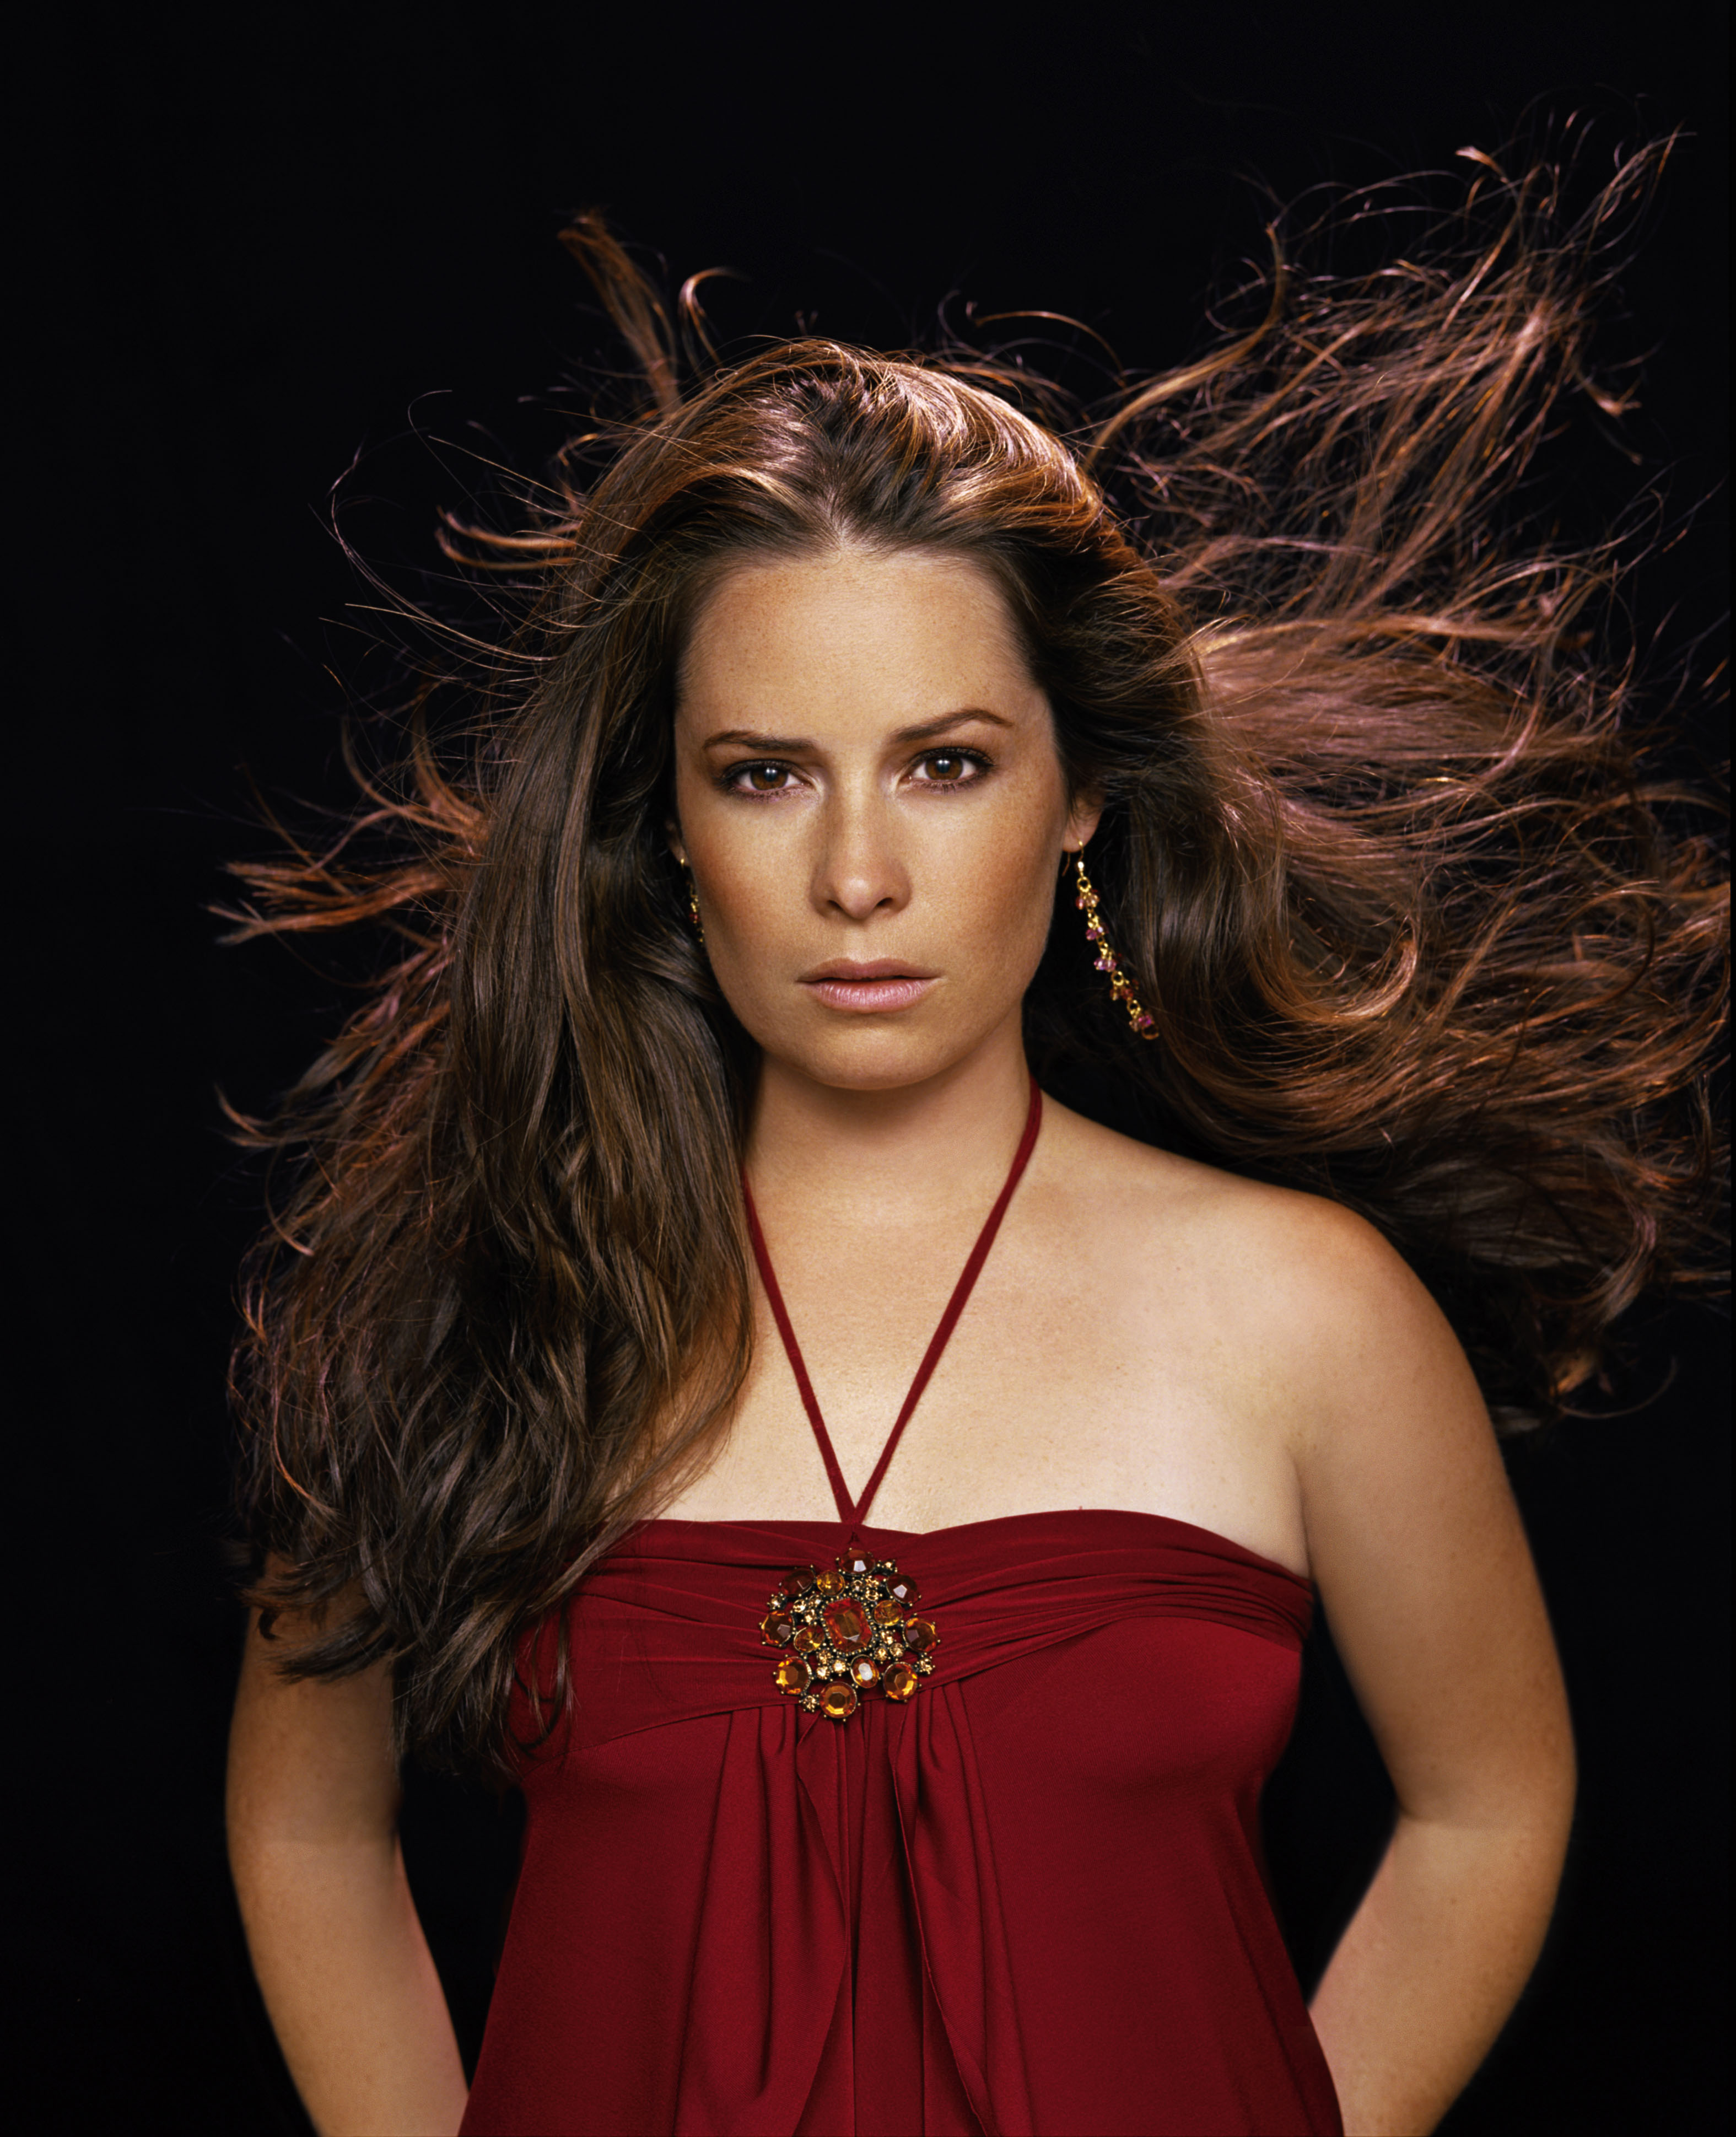 sex pics of holly marie combs